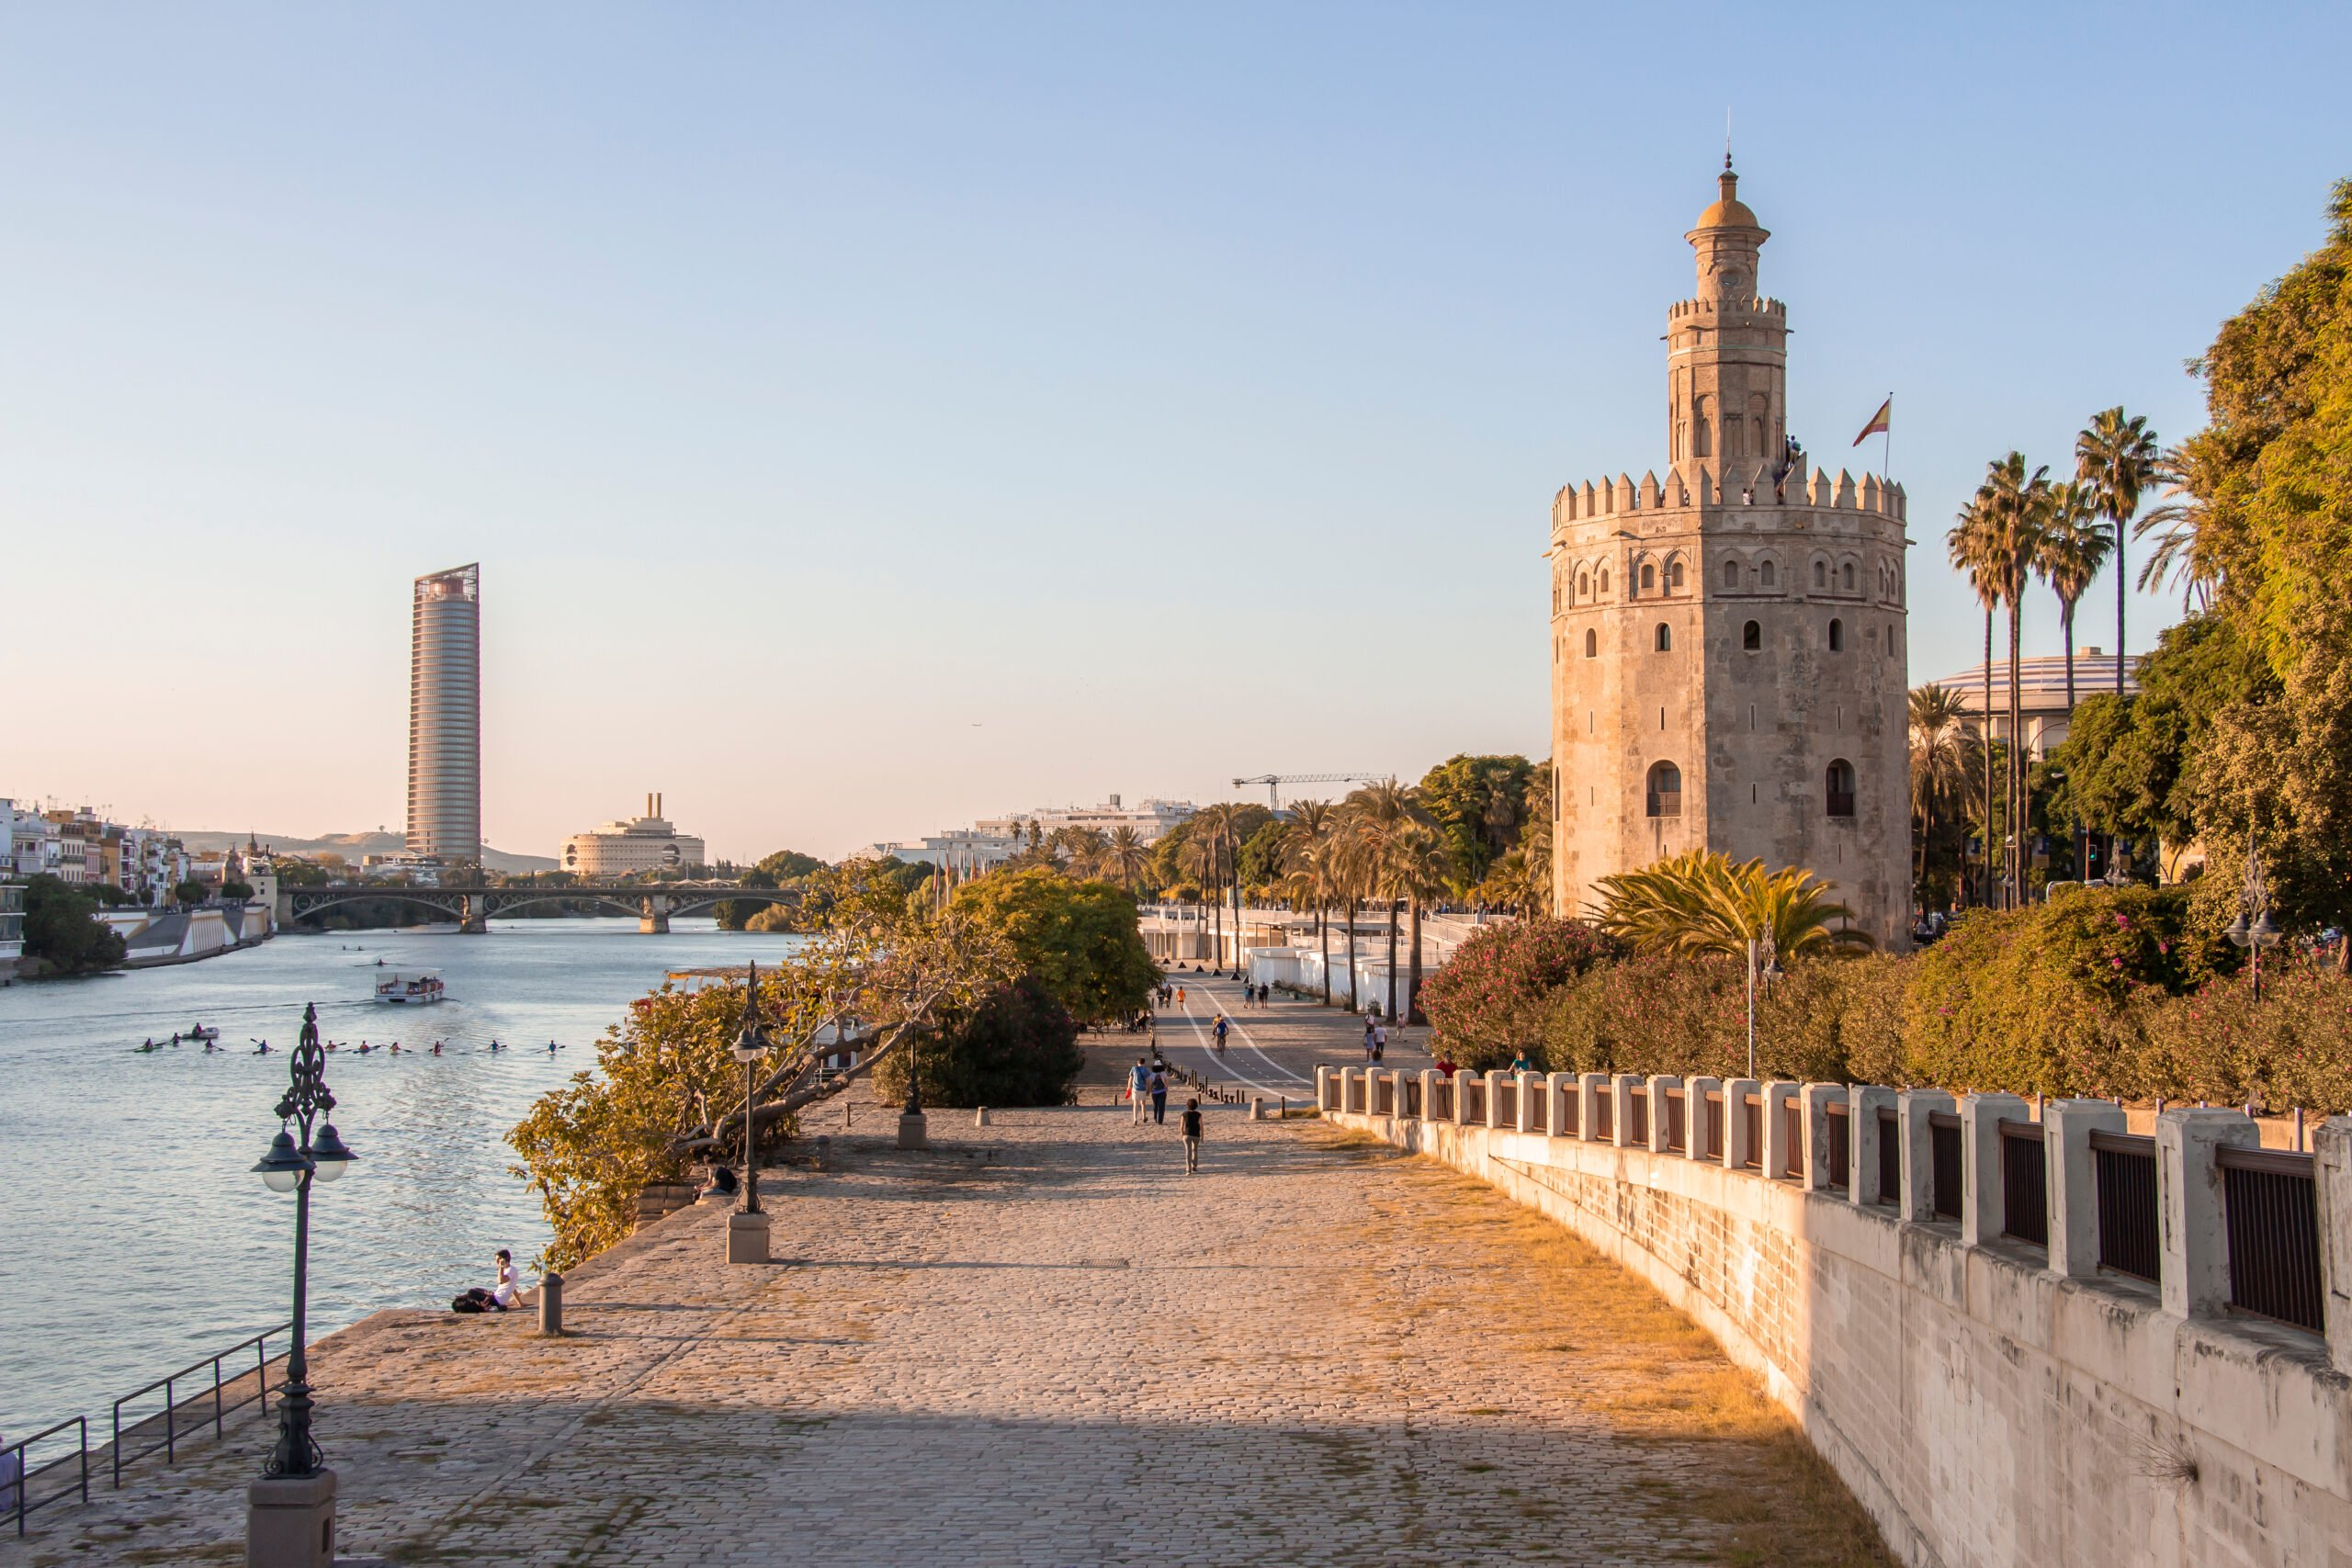 Taste The Flavors Of Seville On The Tapas And Flamenco Experience In Seville